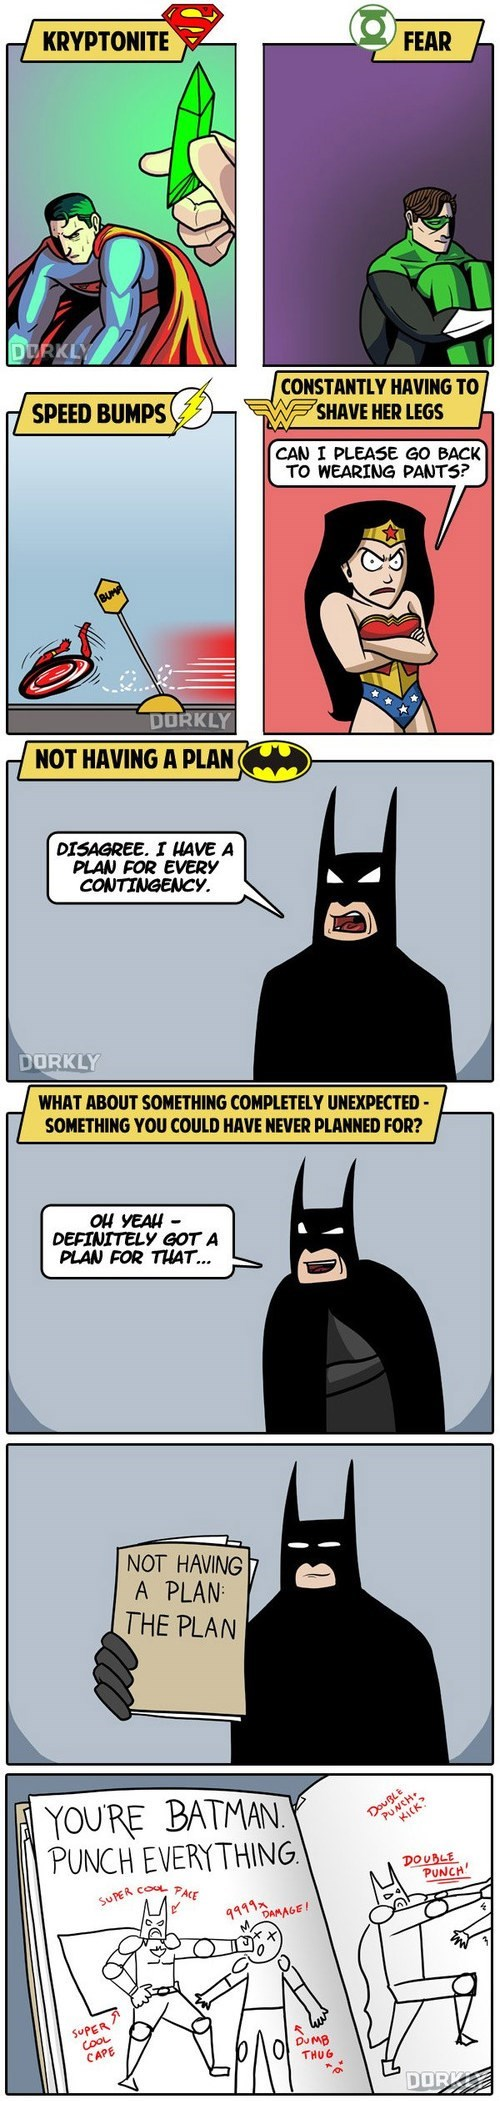 batman dorkly justice league weakness - 8241419008